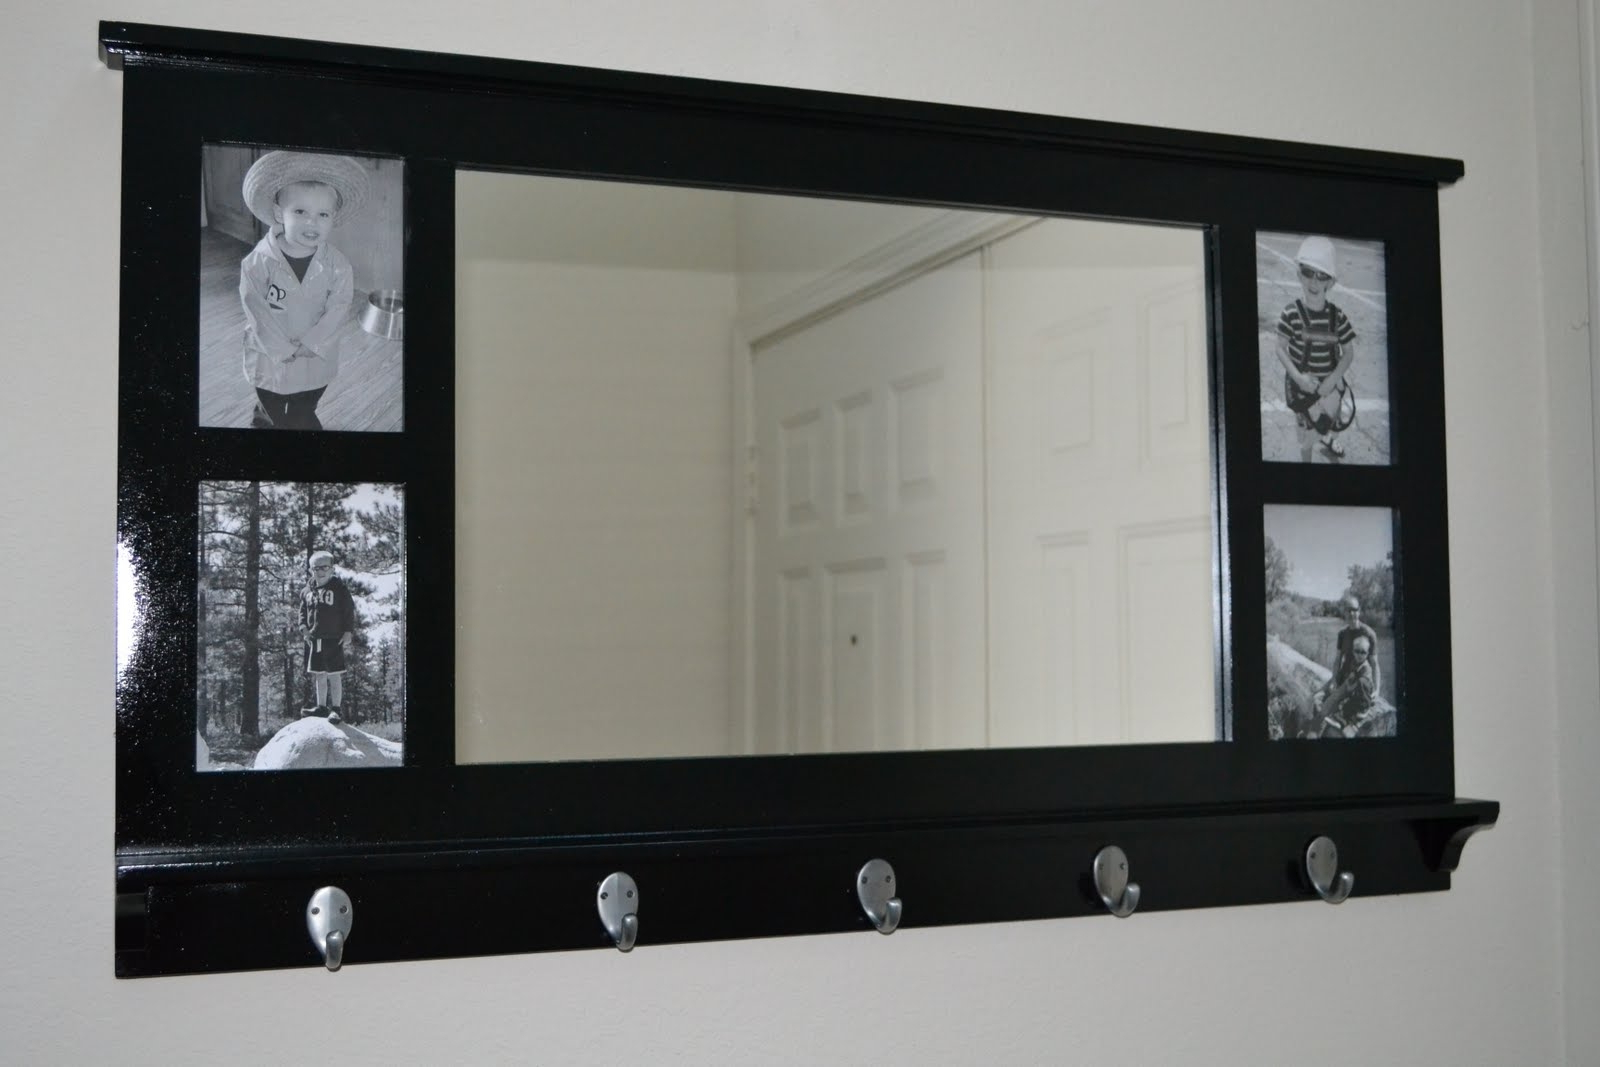 Wall Mirrors With Shelf And Hooks With Regard To Well Liked Wall Shelves With Mirror And Hooks – Webfaceconsult (View 9 of 20)